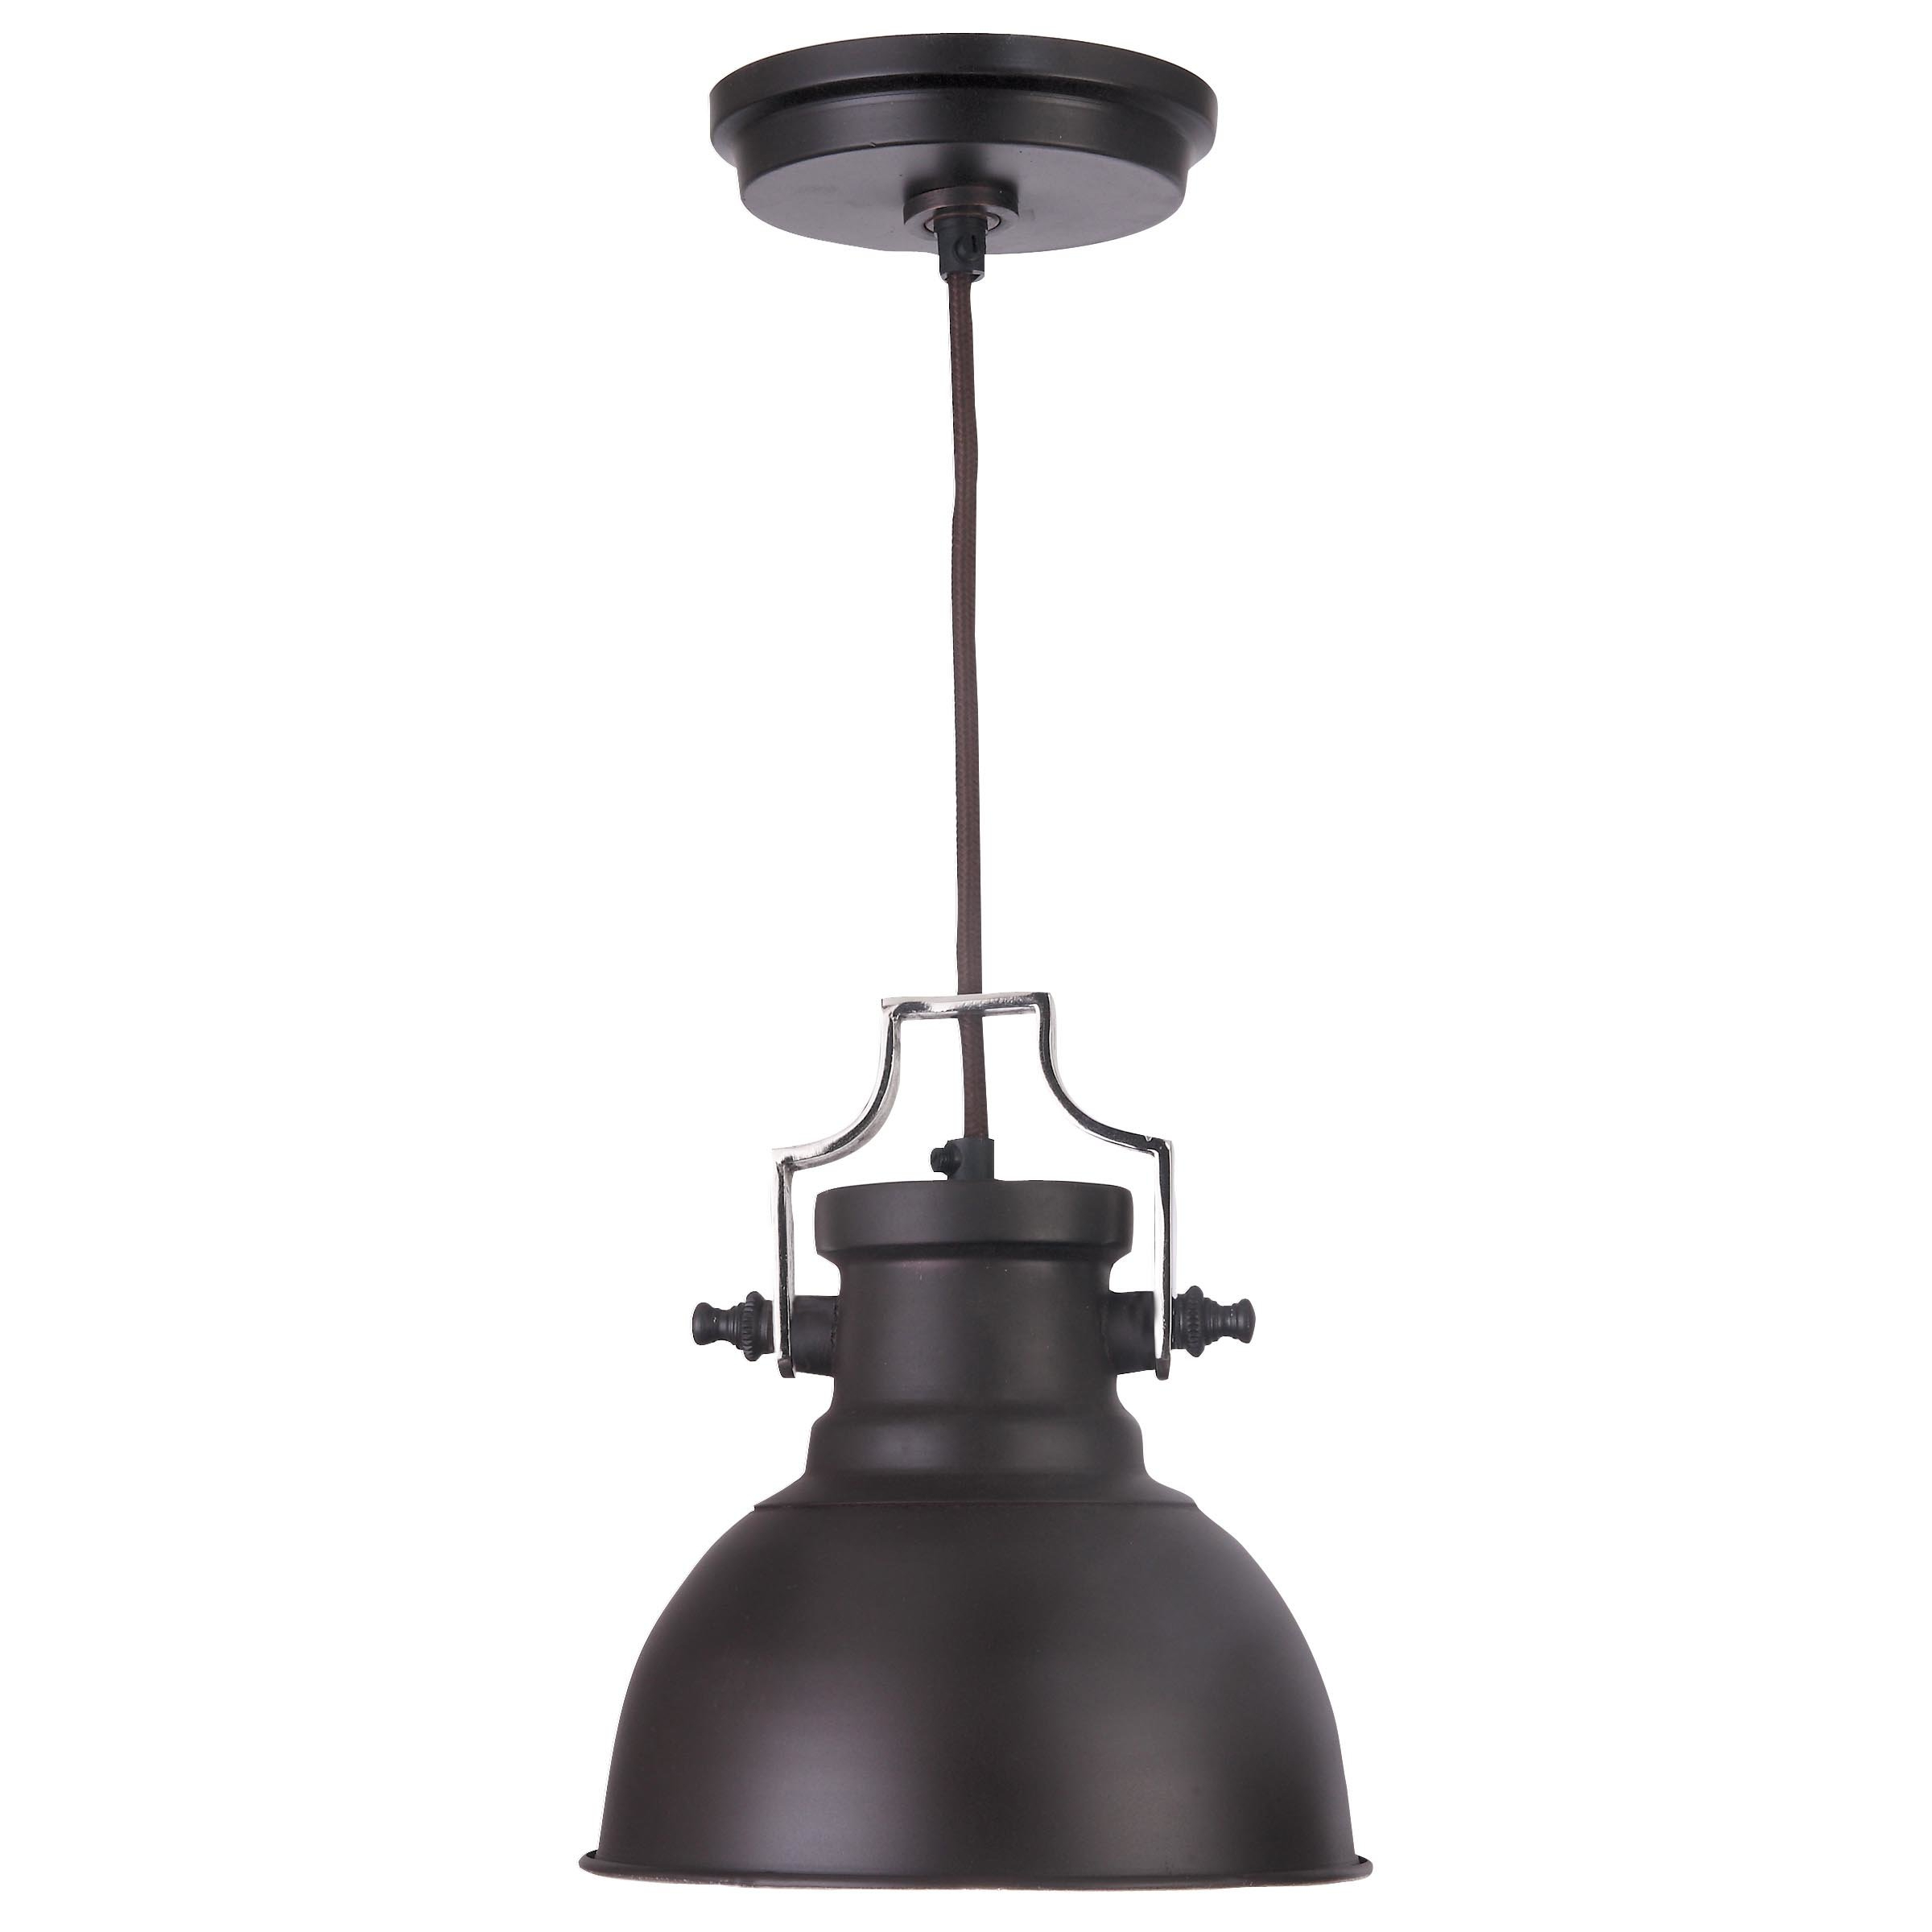 Widely Used Priston 1 Light Single Dome Pendants Regarding Jules 1 Light Single Dome Pendant (View 20 of 20)